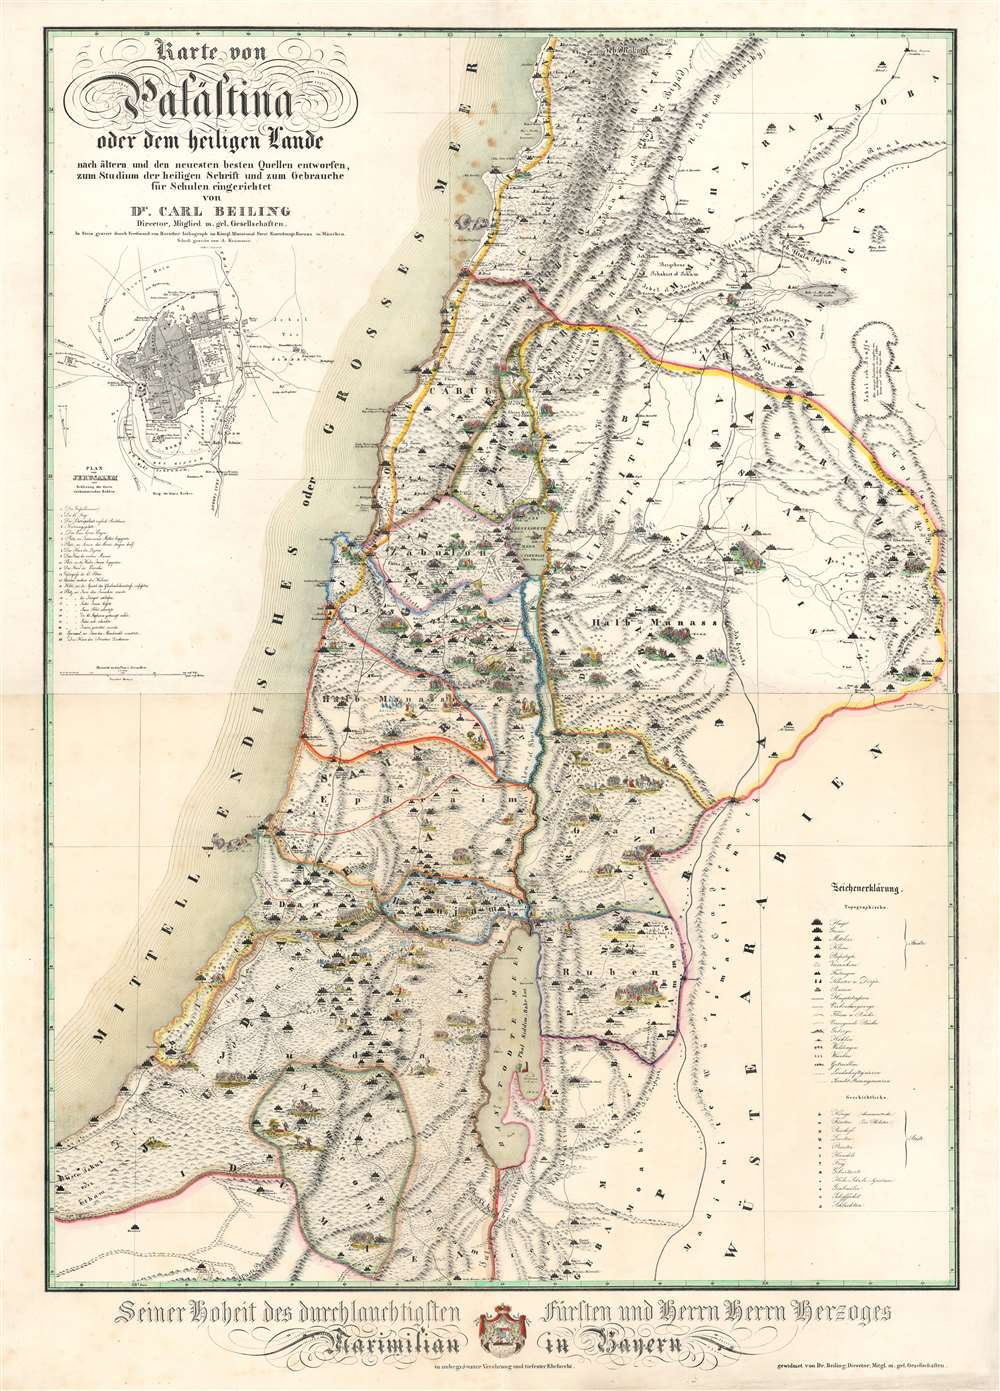 1843 Beiling Map of Palestine or the Holy Land